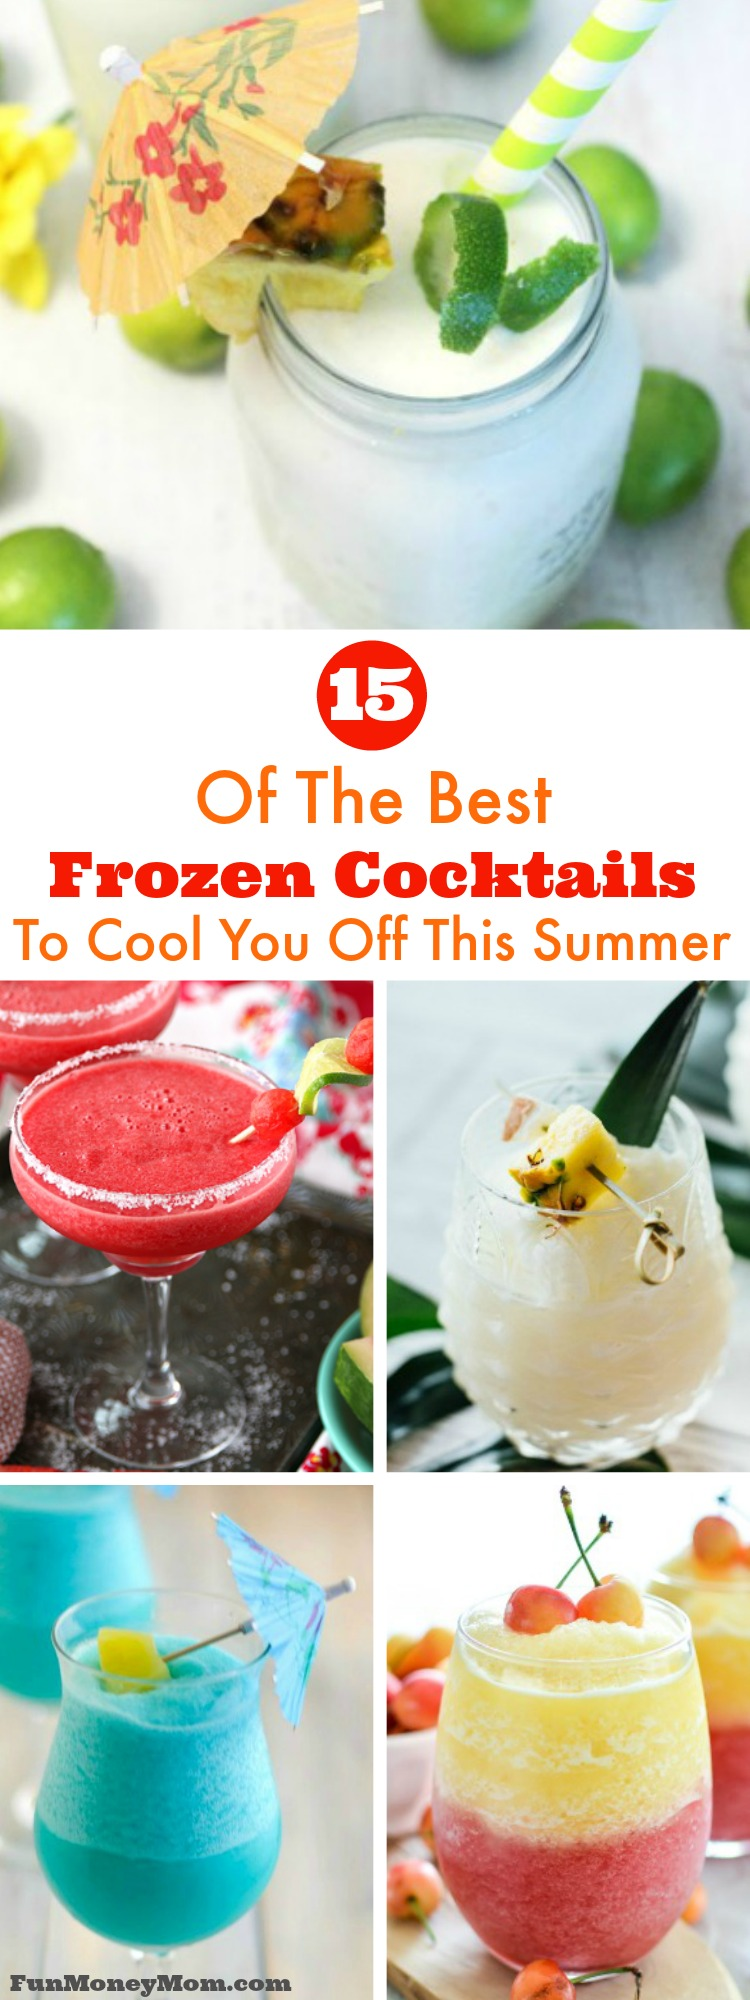 Looking some delicious frozen cocktails to cool you off this summer? Pull a chair up next to the pool and sip on one of these refreshing adult drinks!